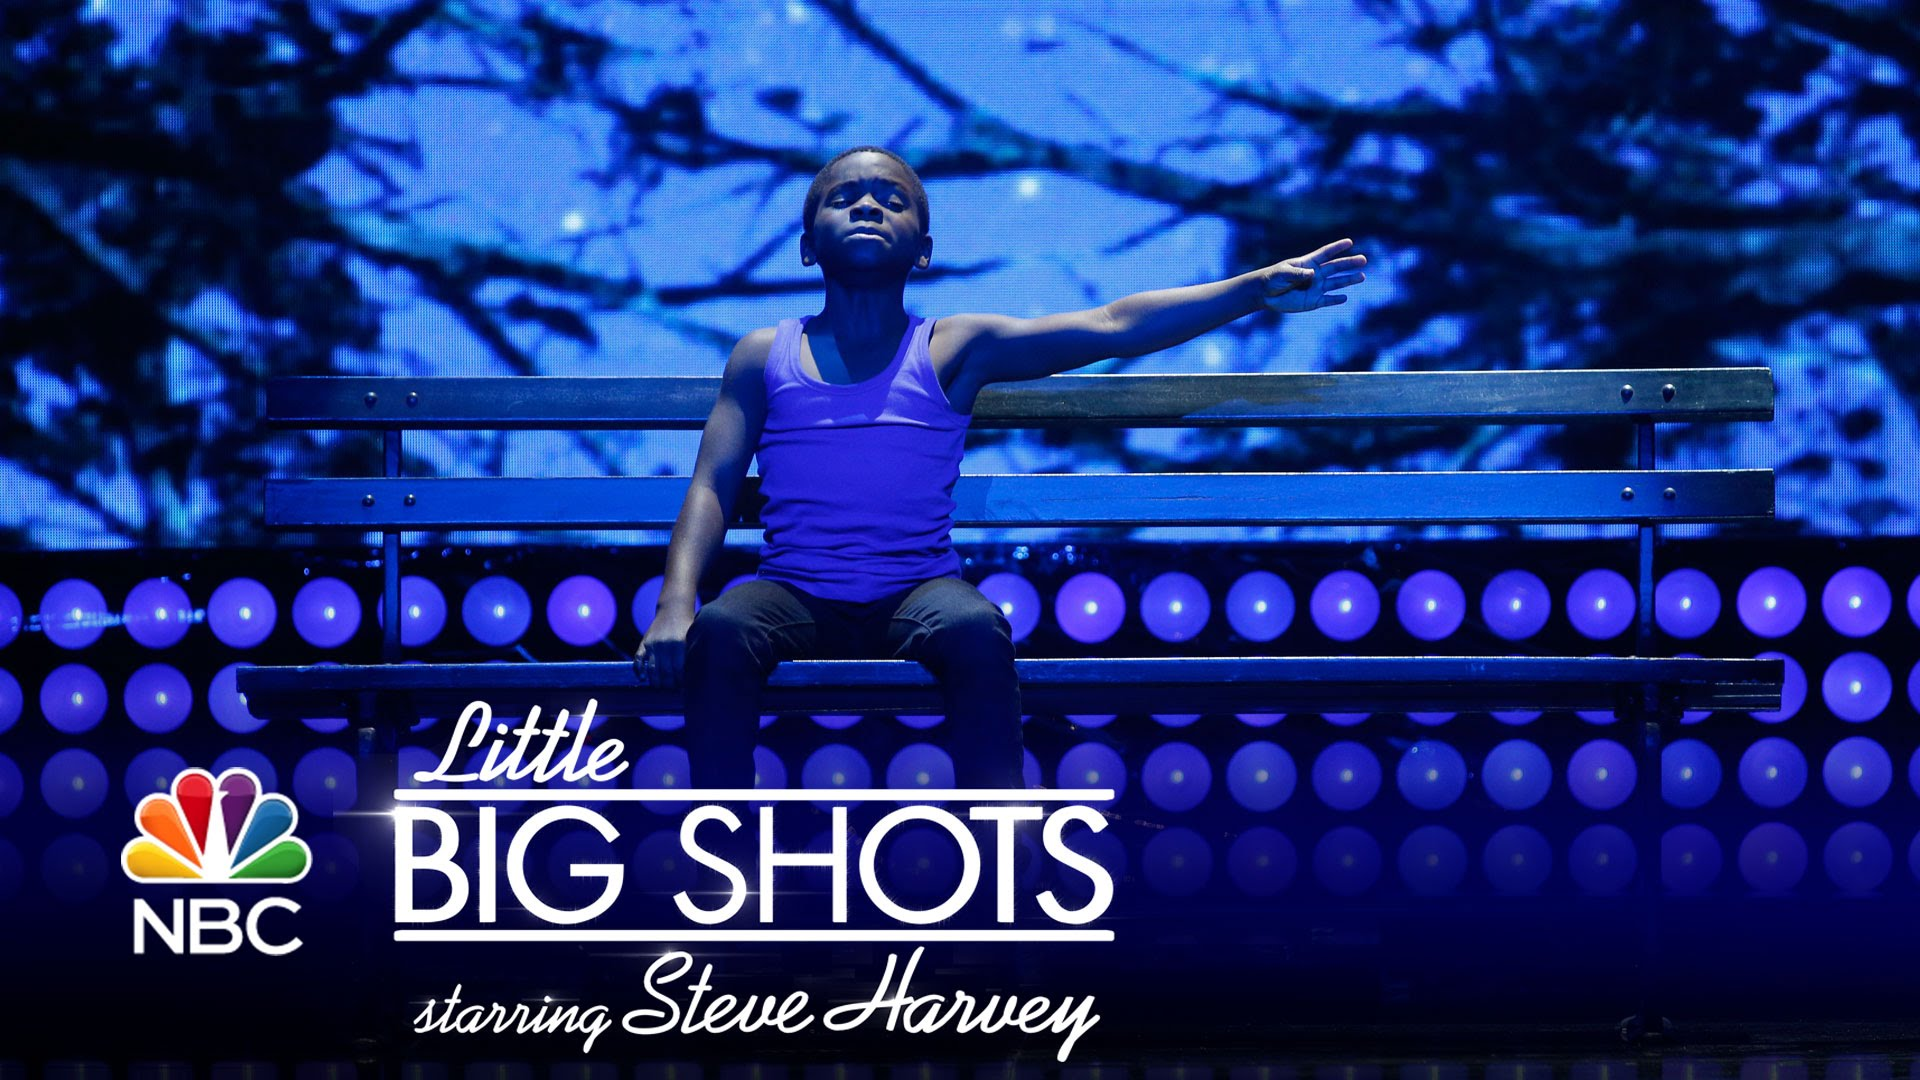 Little Big Shots - Artyon, the Awesome Dancer-Gymnast